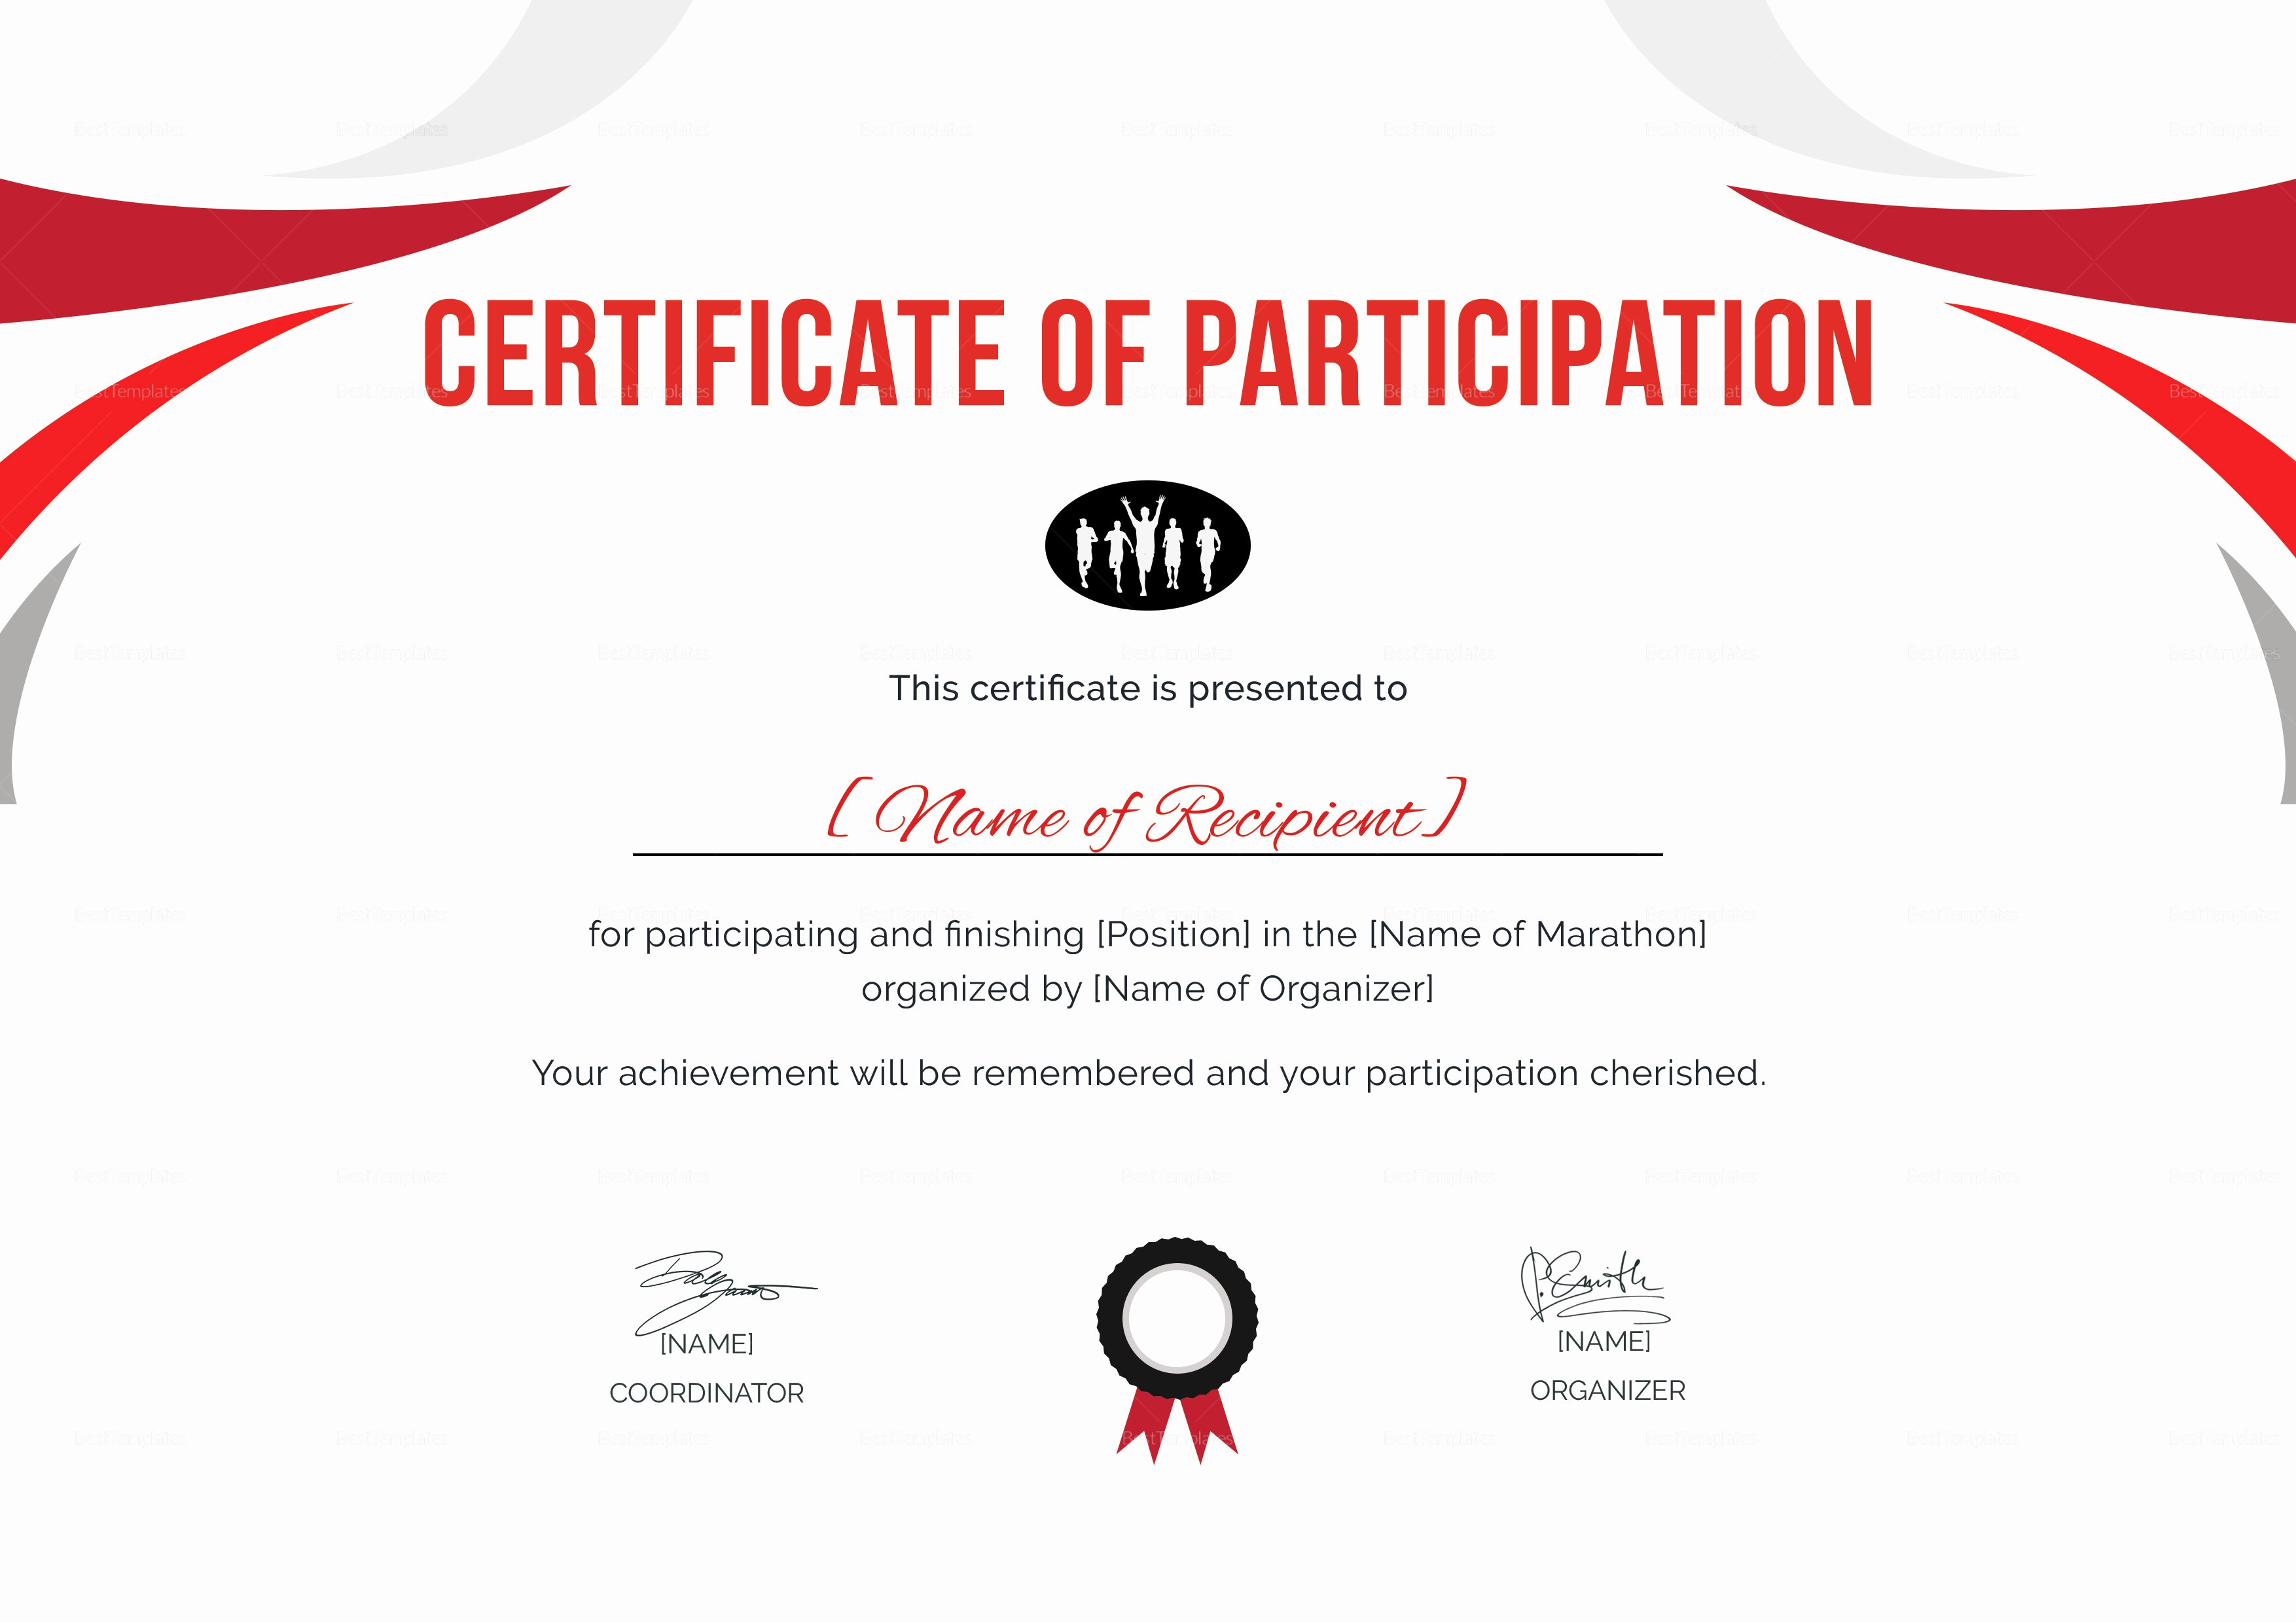 Certificate Of Participation Template Inspirational Participation Certificate for Running Template In Psd Word